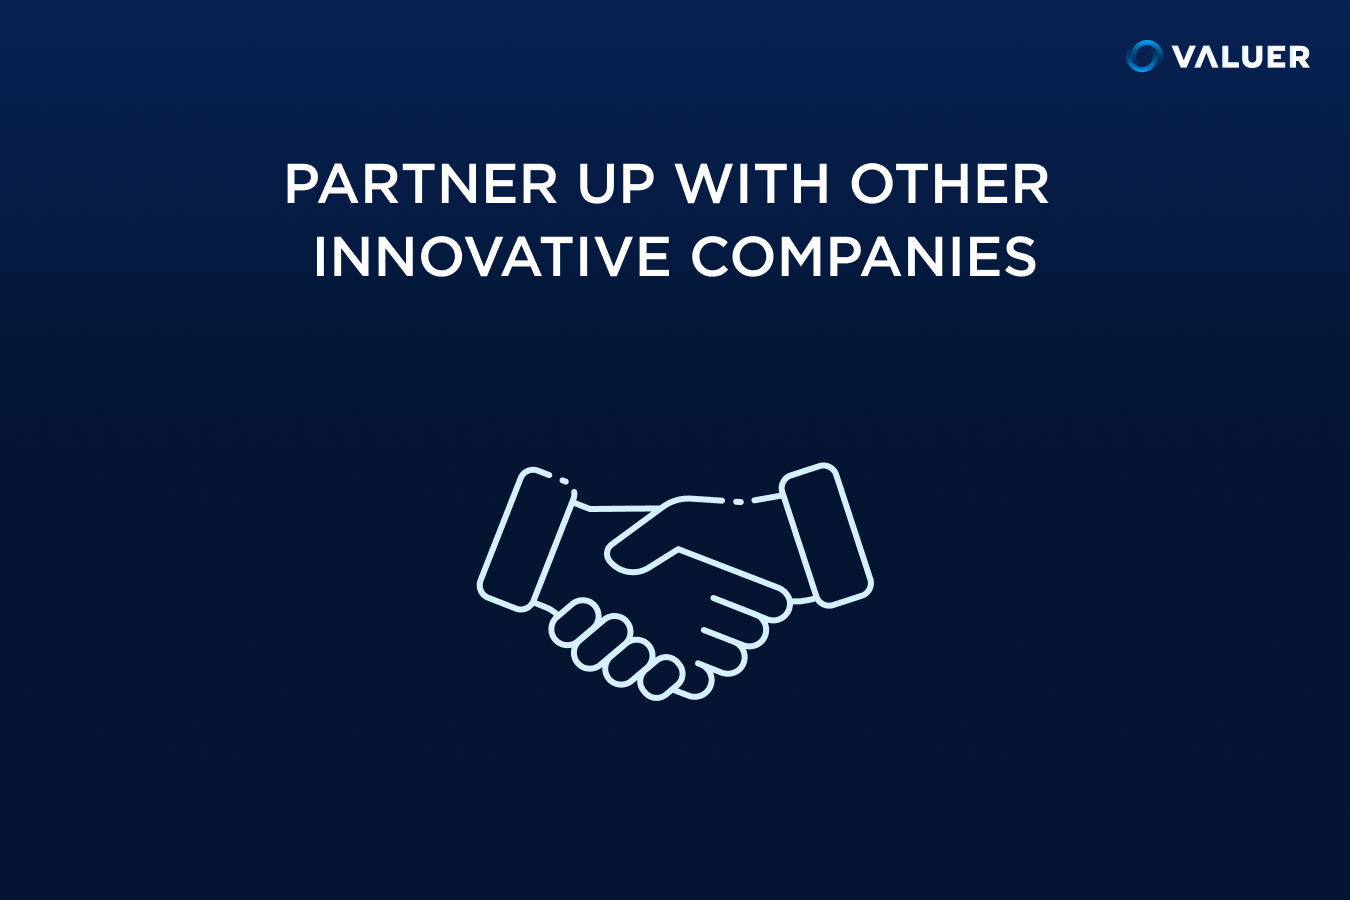 Partner up with Other Innovative Companies with an image of two hands shaking